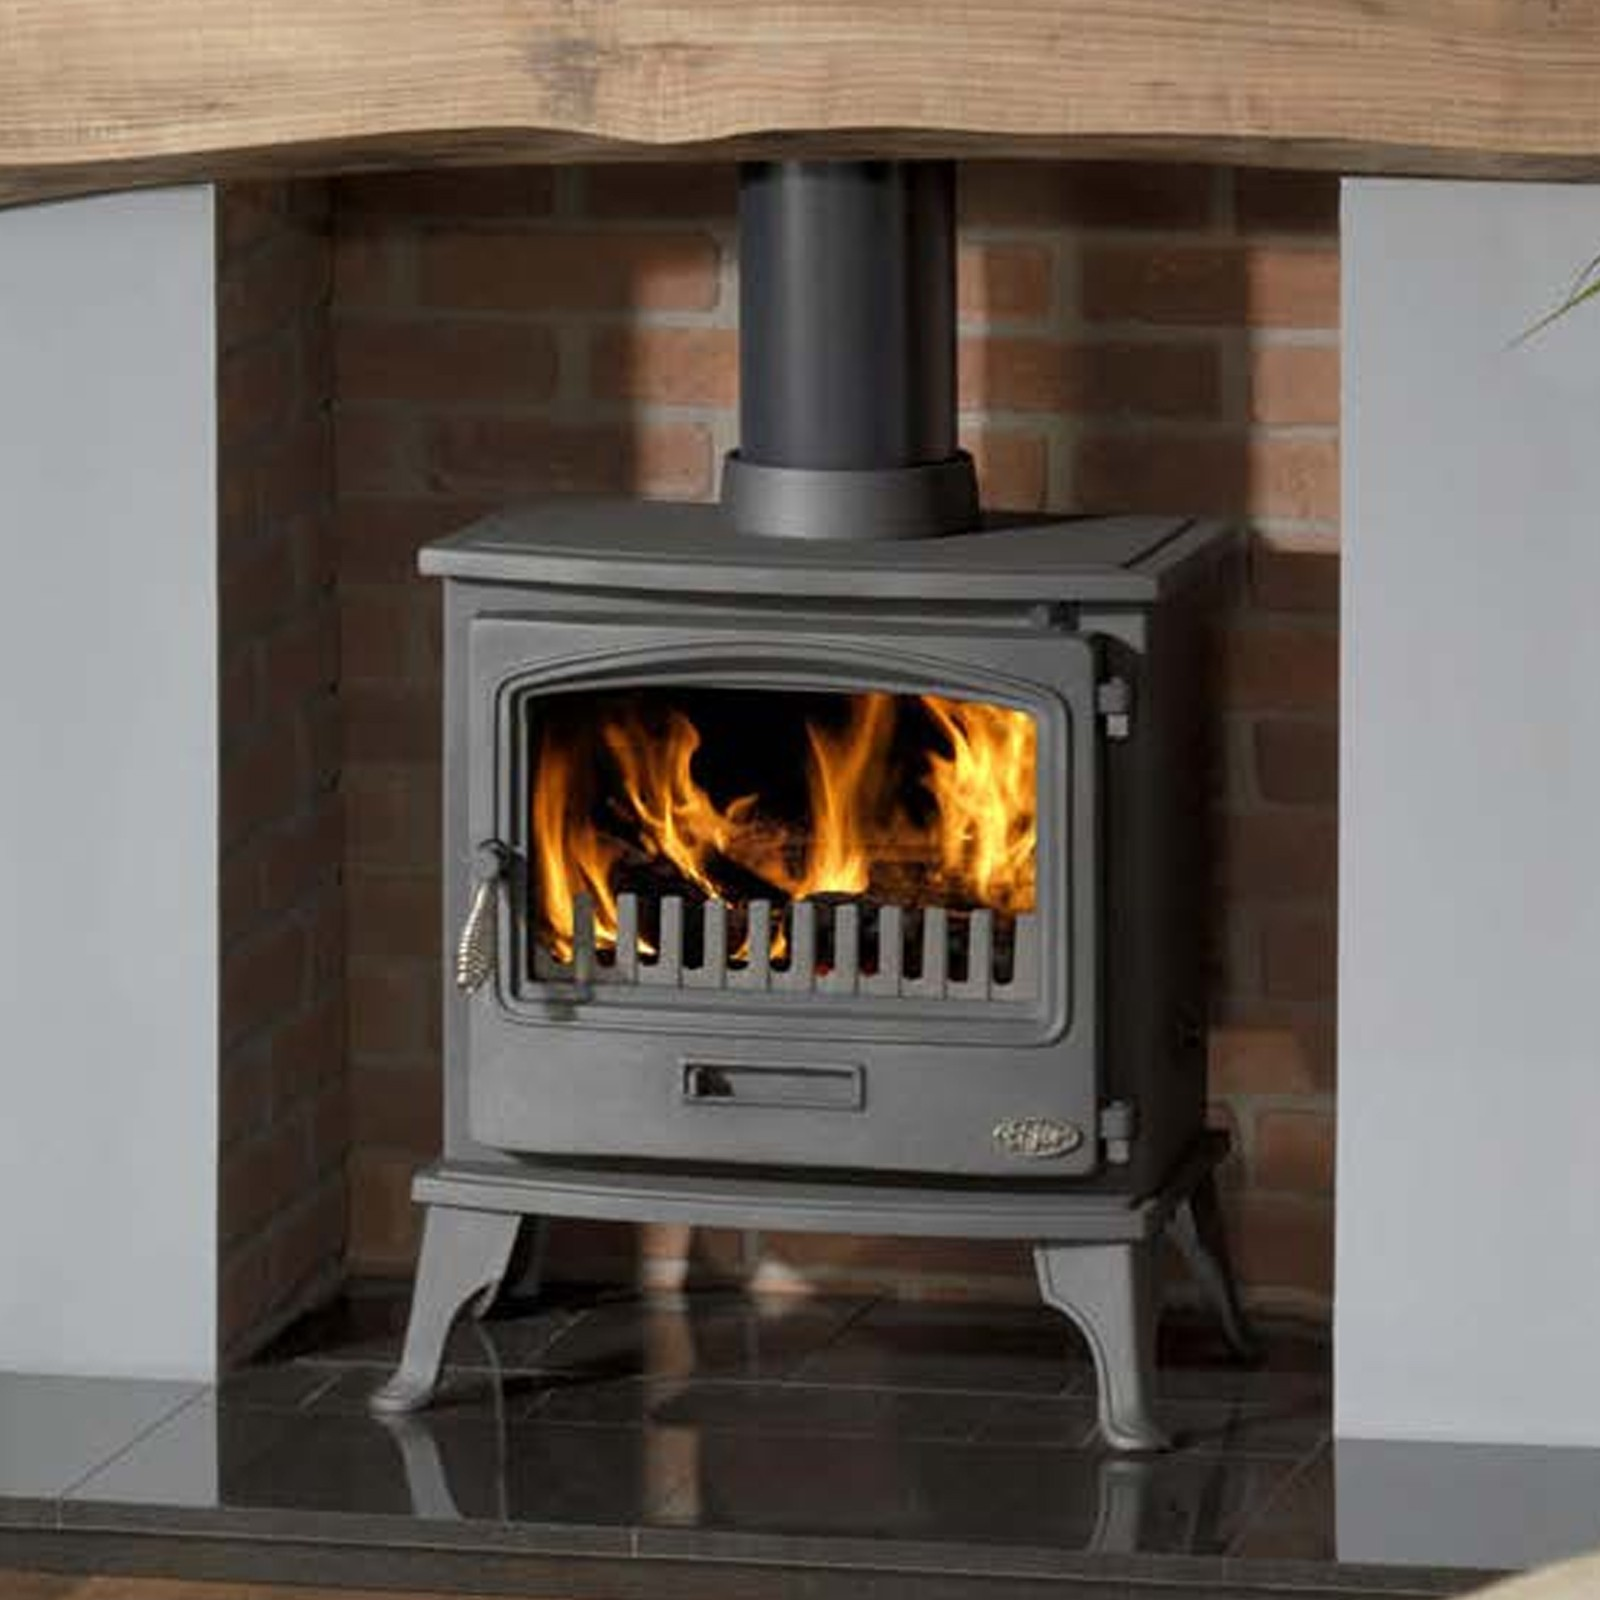 Gallery tiger clean burn defra wood burning stove Wood burning stoves